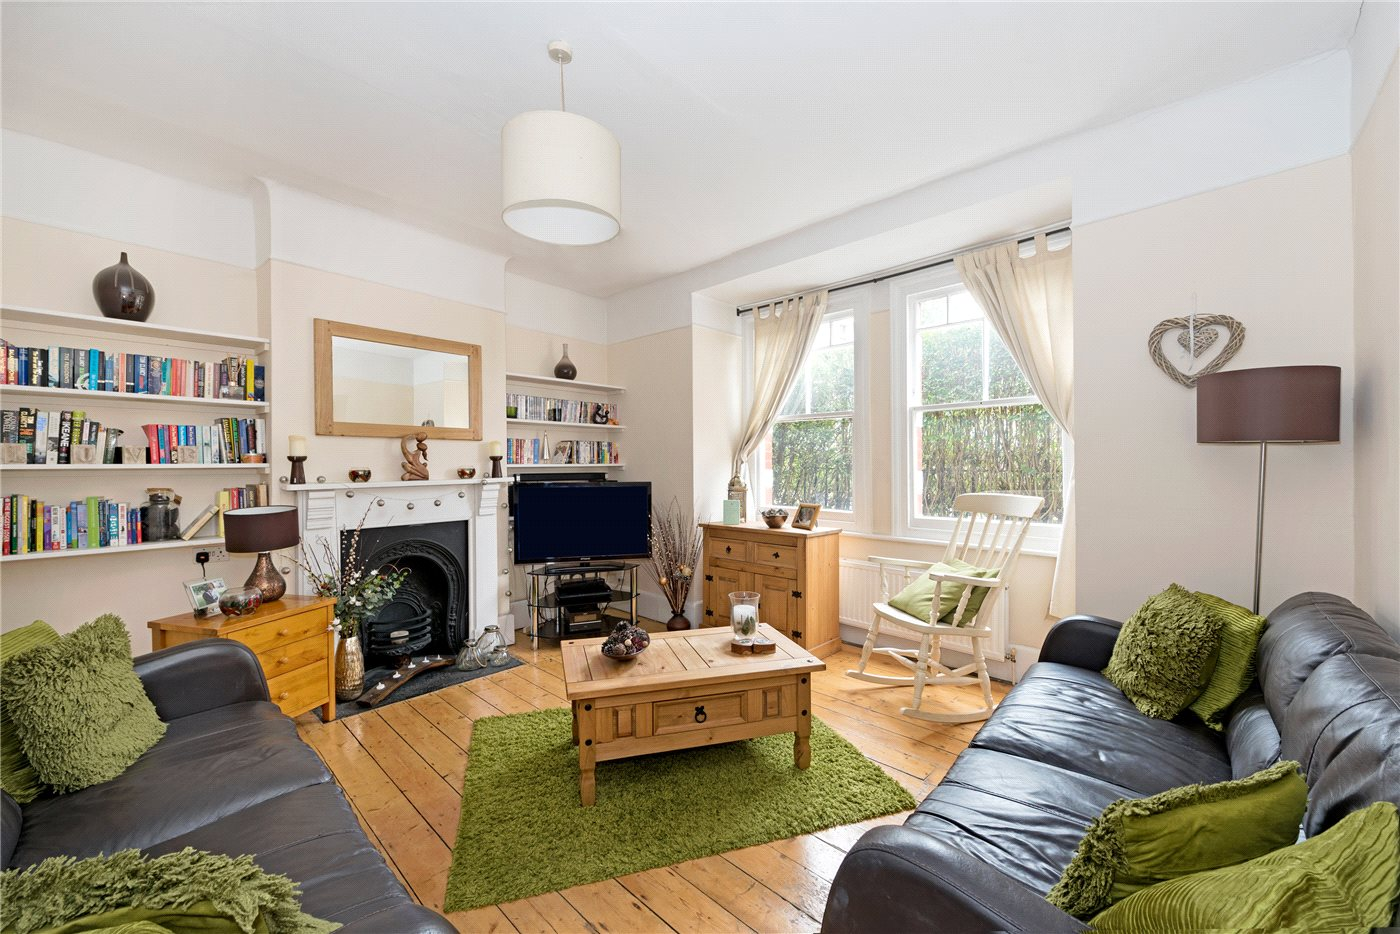 2 Bedrooms Maisonette Flat for sale in Franciscan Road, London, SW17